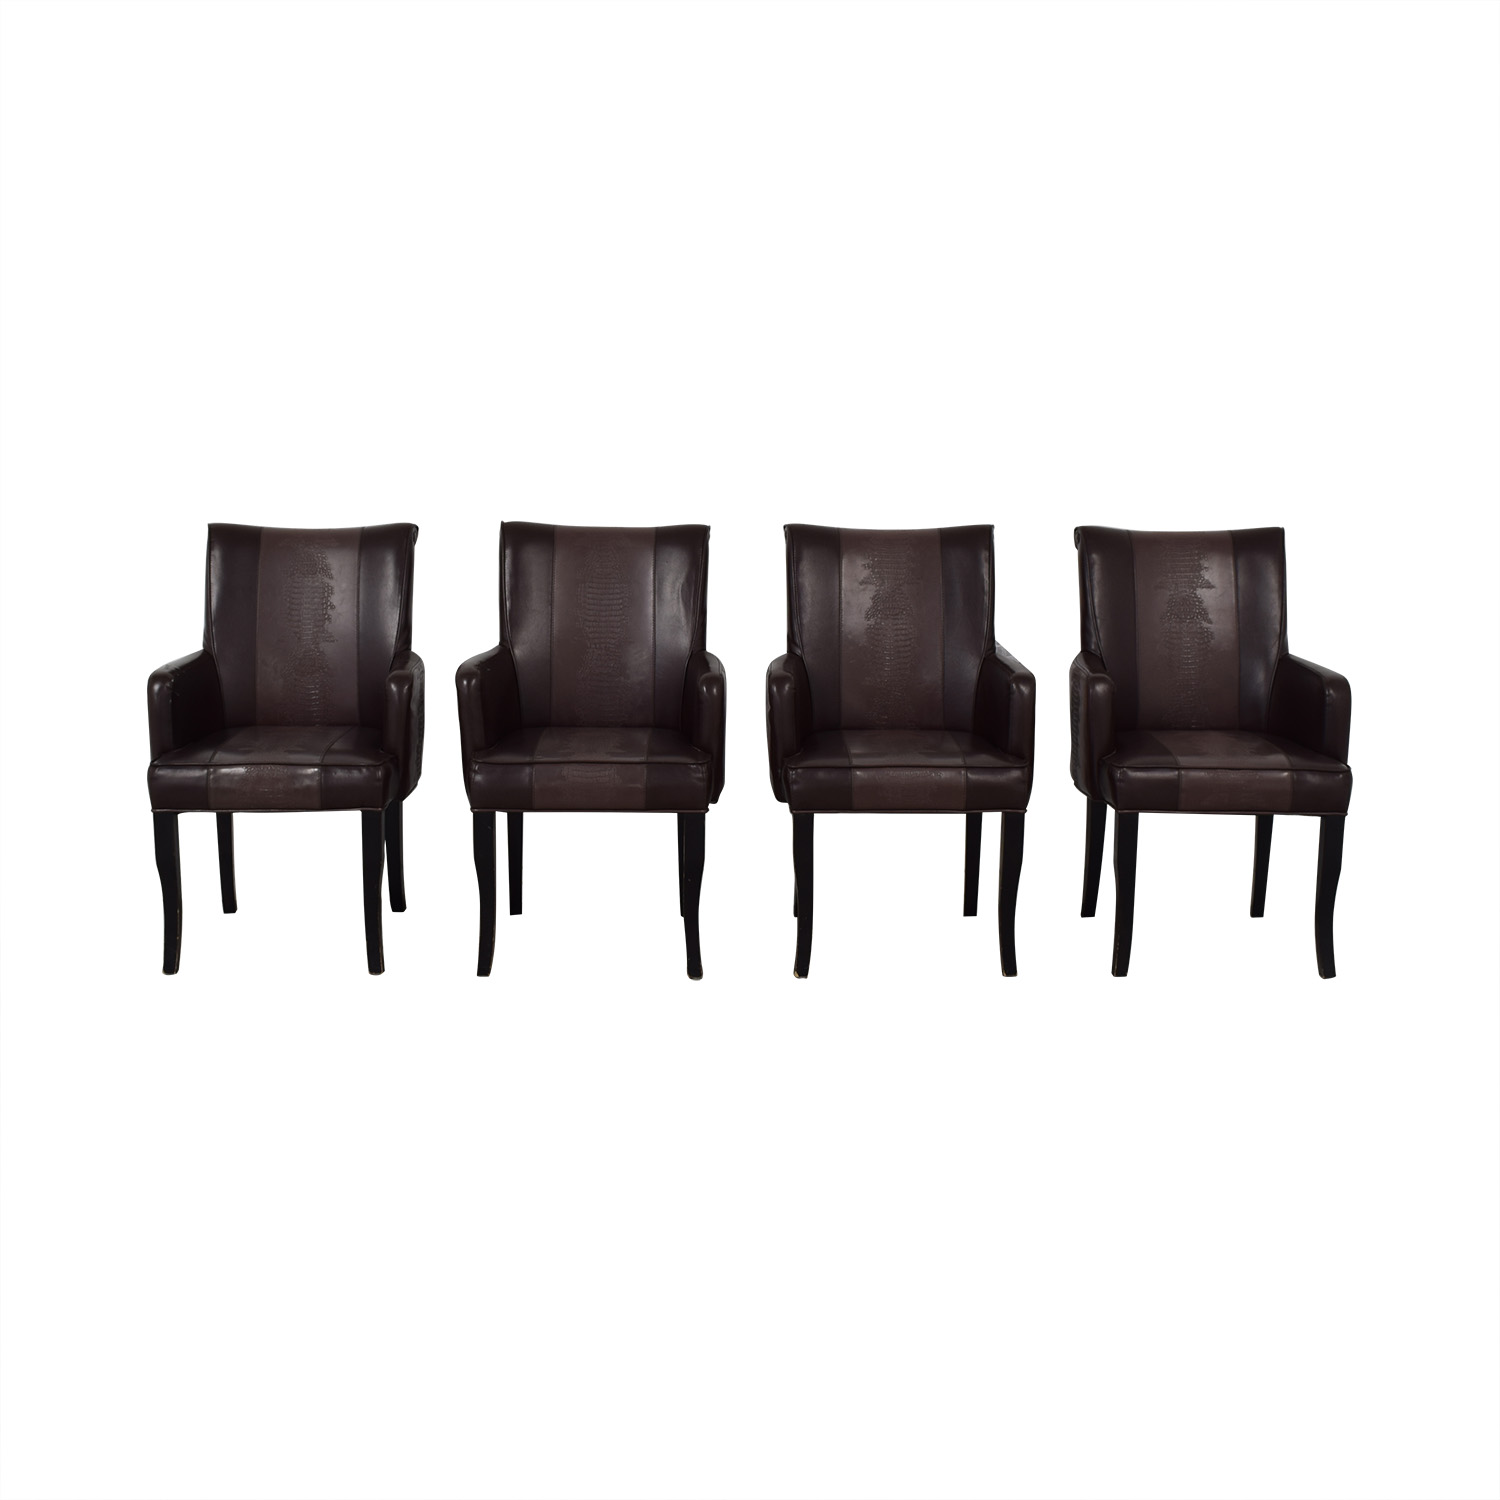 Bloomingdale's Bloomingdale's Brown Leather Dining Chairs discount